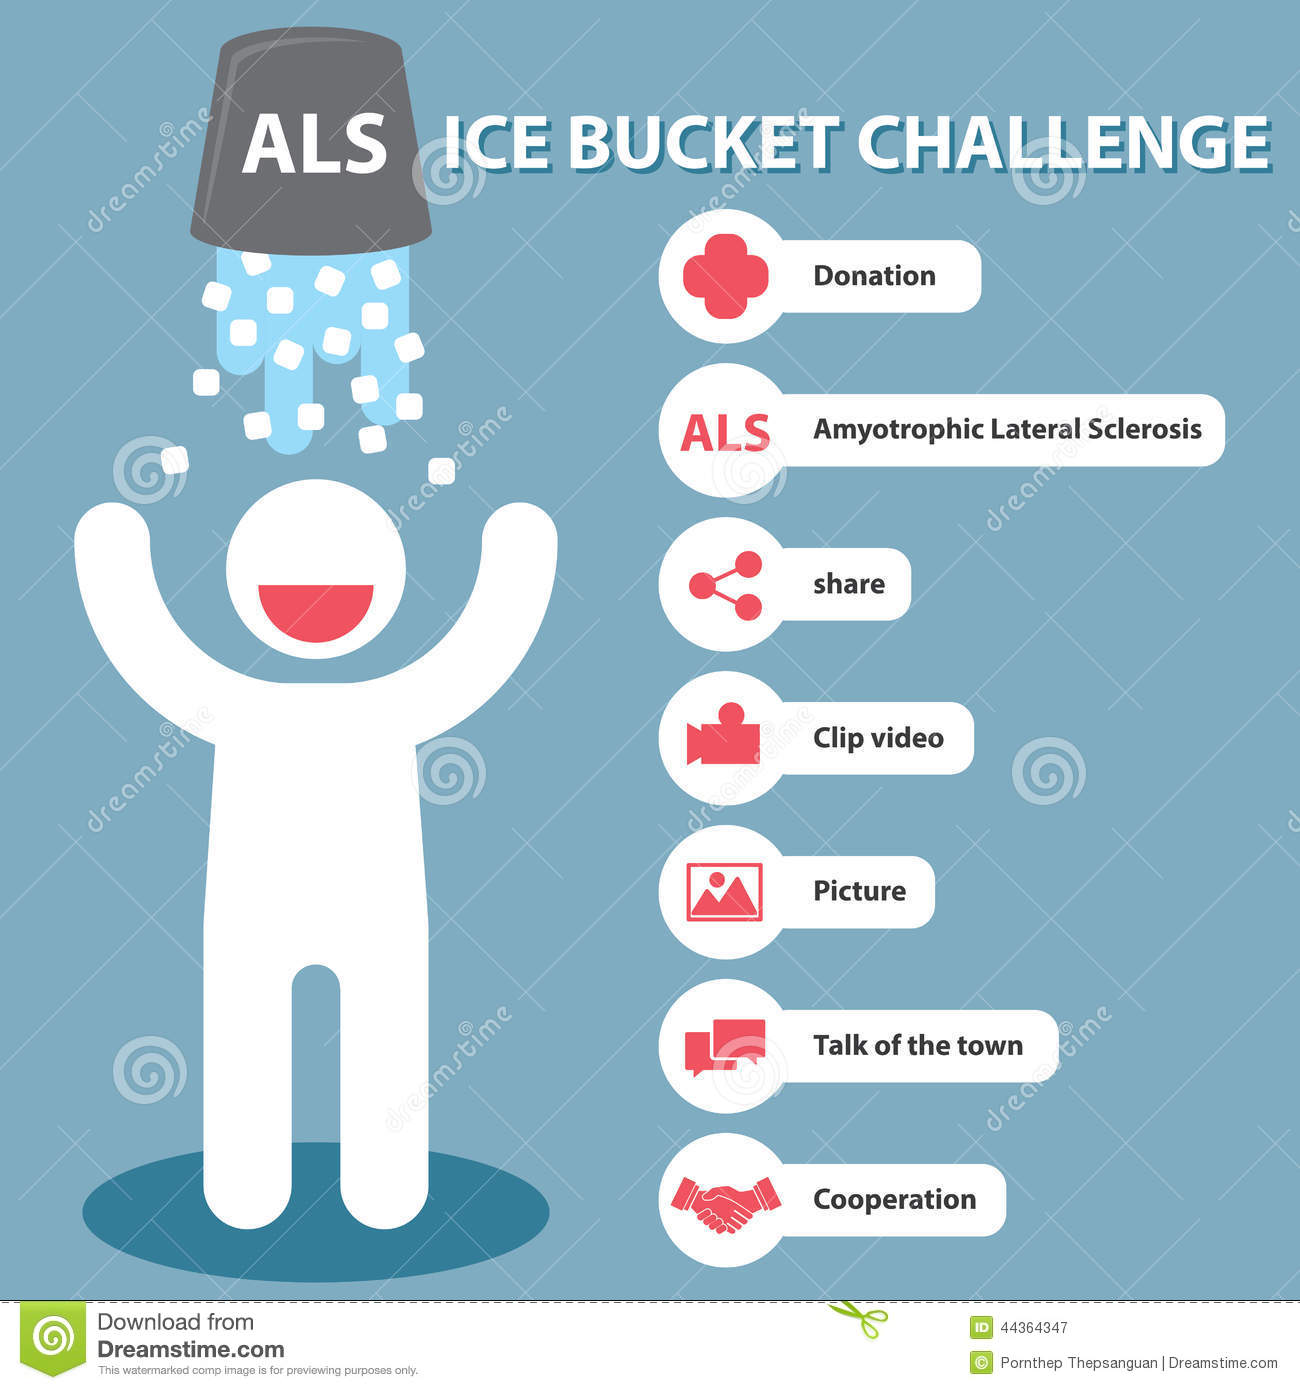 als ice bucket challenge Boston city councillor tito jackson, left in suit, leads some 200 people in the ice bucket challenge at boston's copley square, on aug 7 to raise funds and awareness.